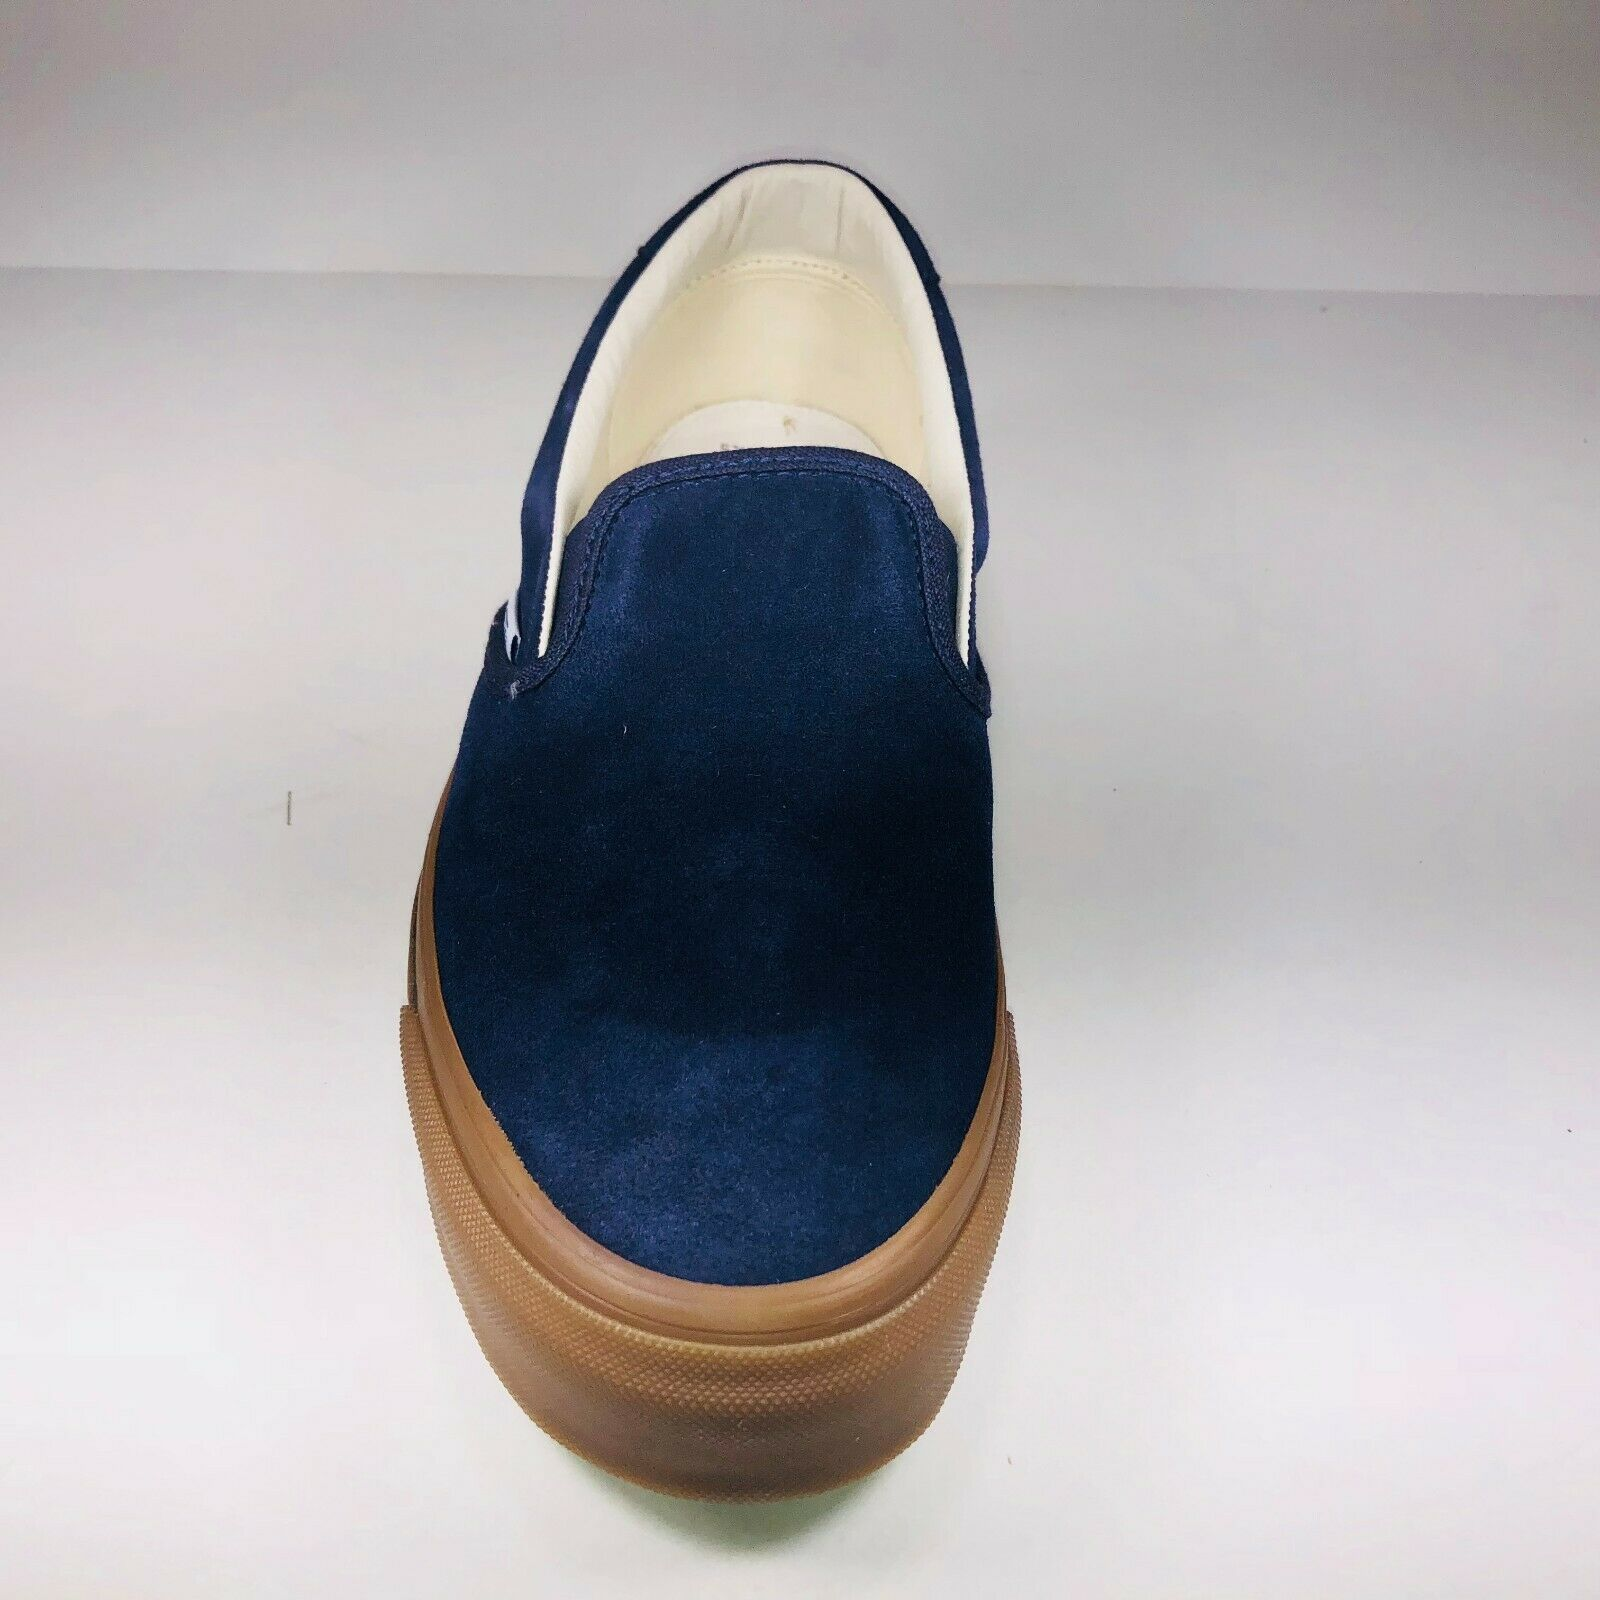 VANS VANS VANS OG Slip On 59 Suede Maritime bluee Brown Fashion shoes VN0A38FZQM8 Size 8.5 0bc3e3